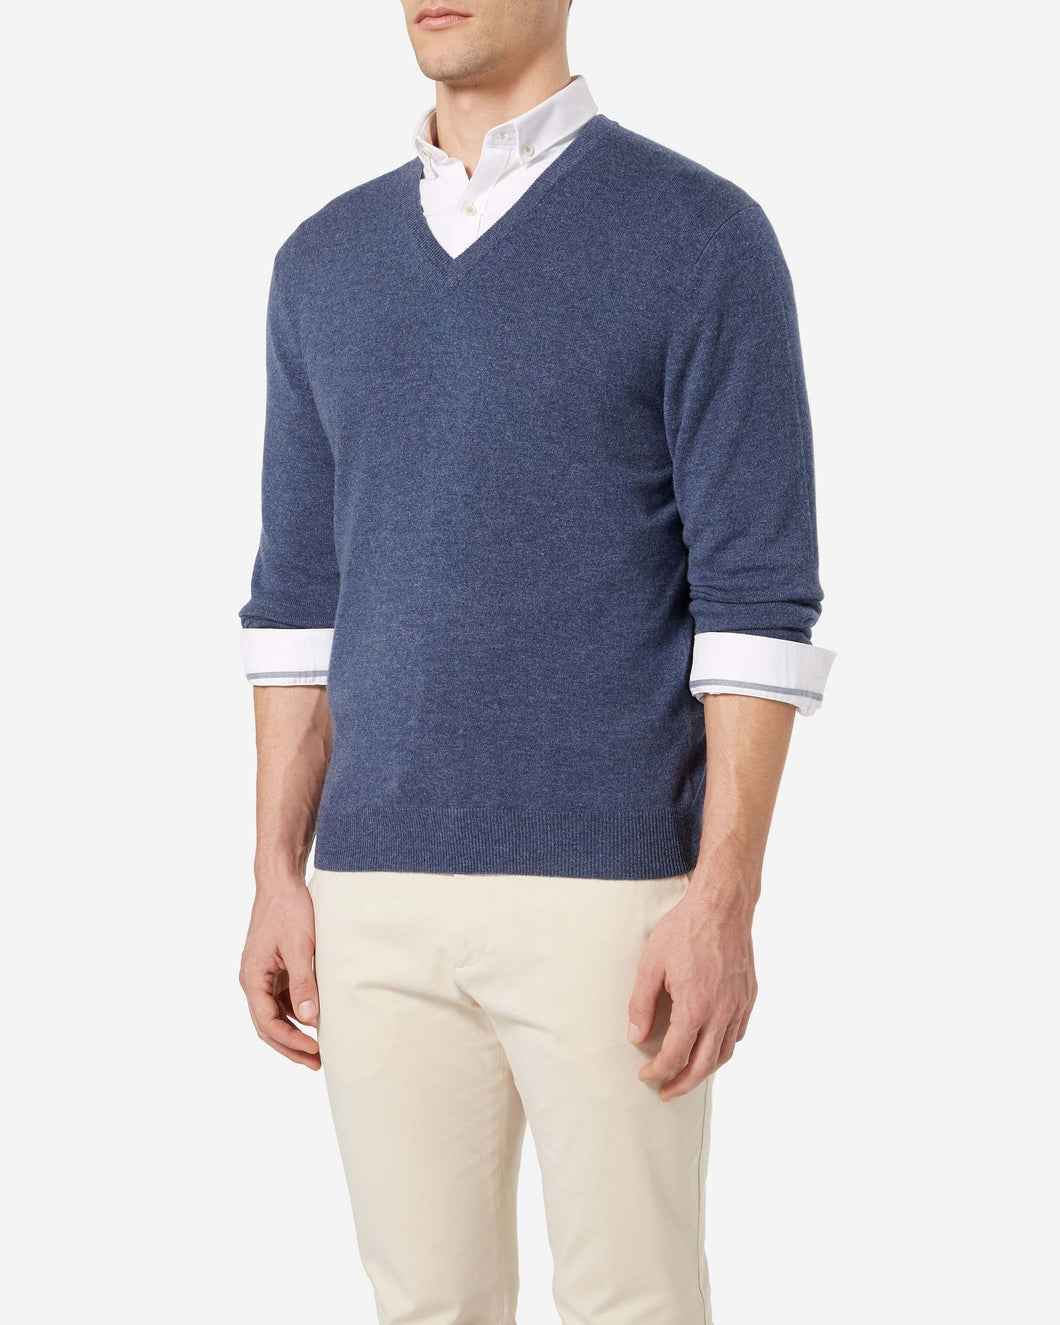 The Burlington V Neck 1ply Cashmere Sweater Selvedge Blue